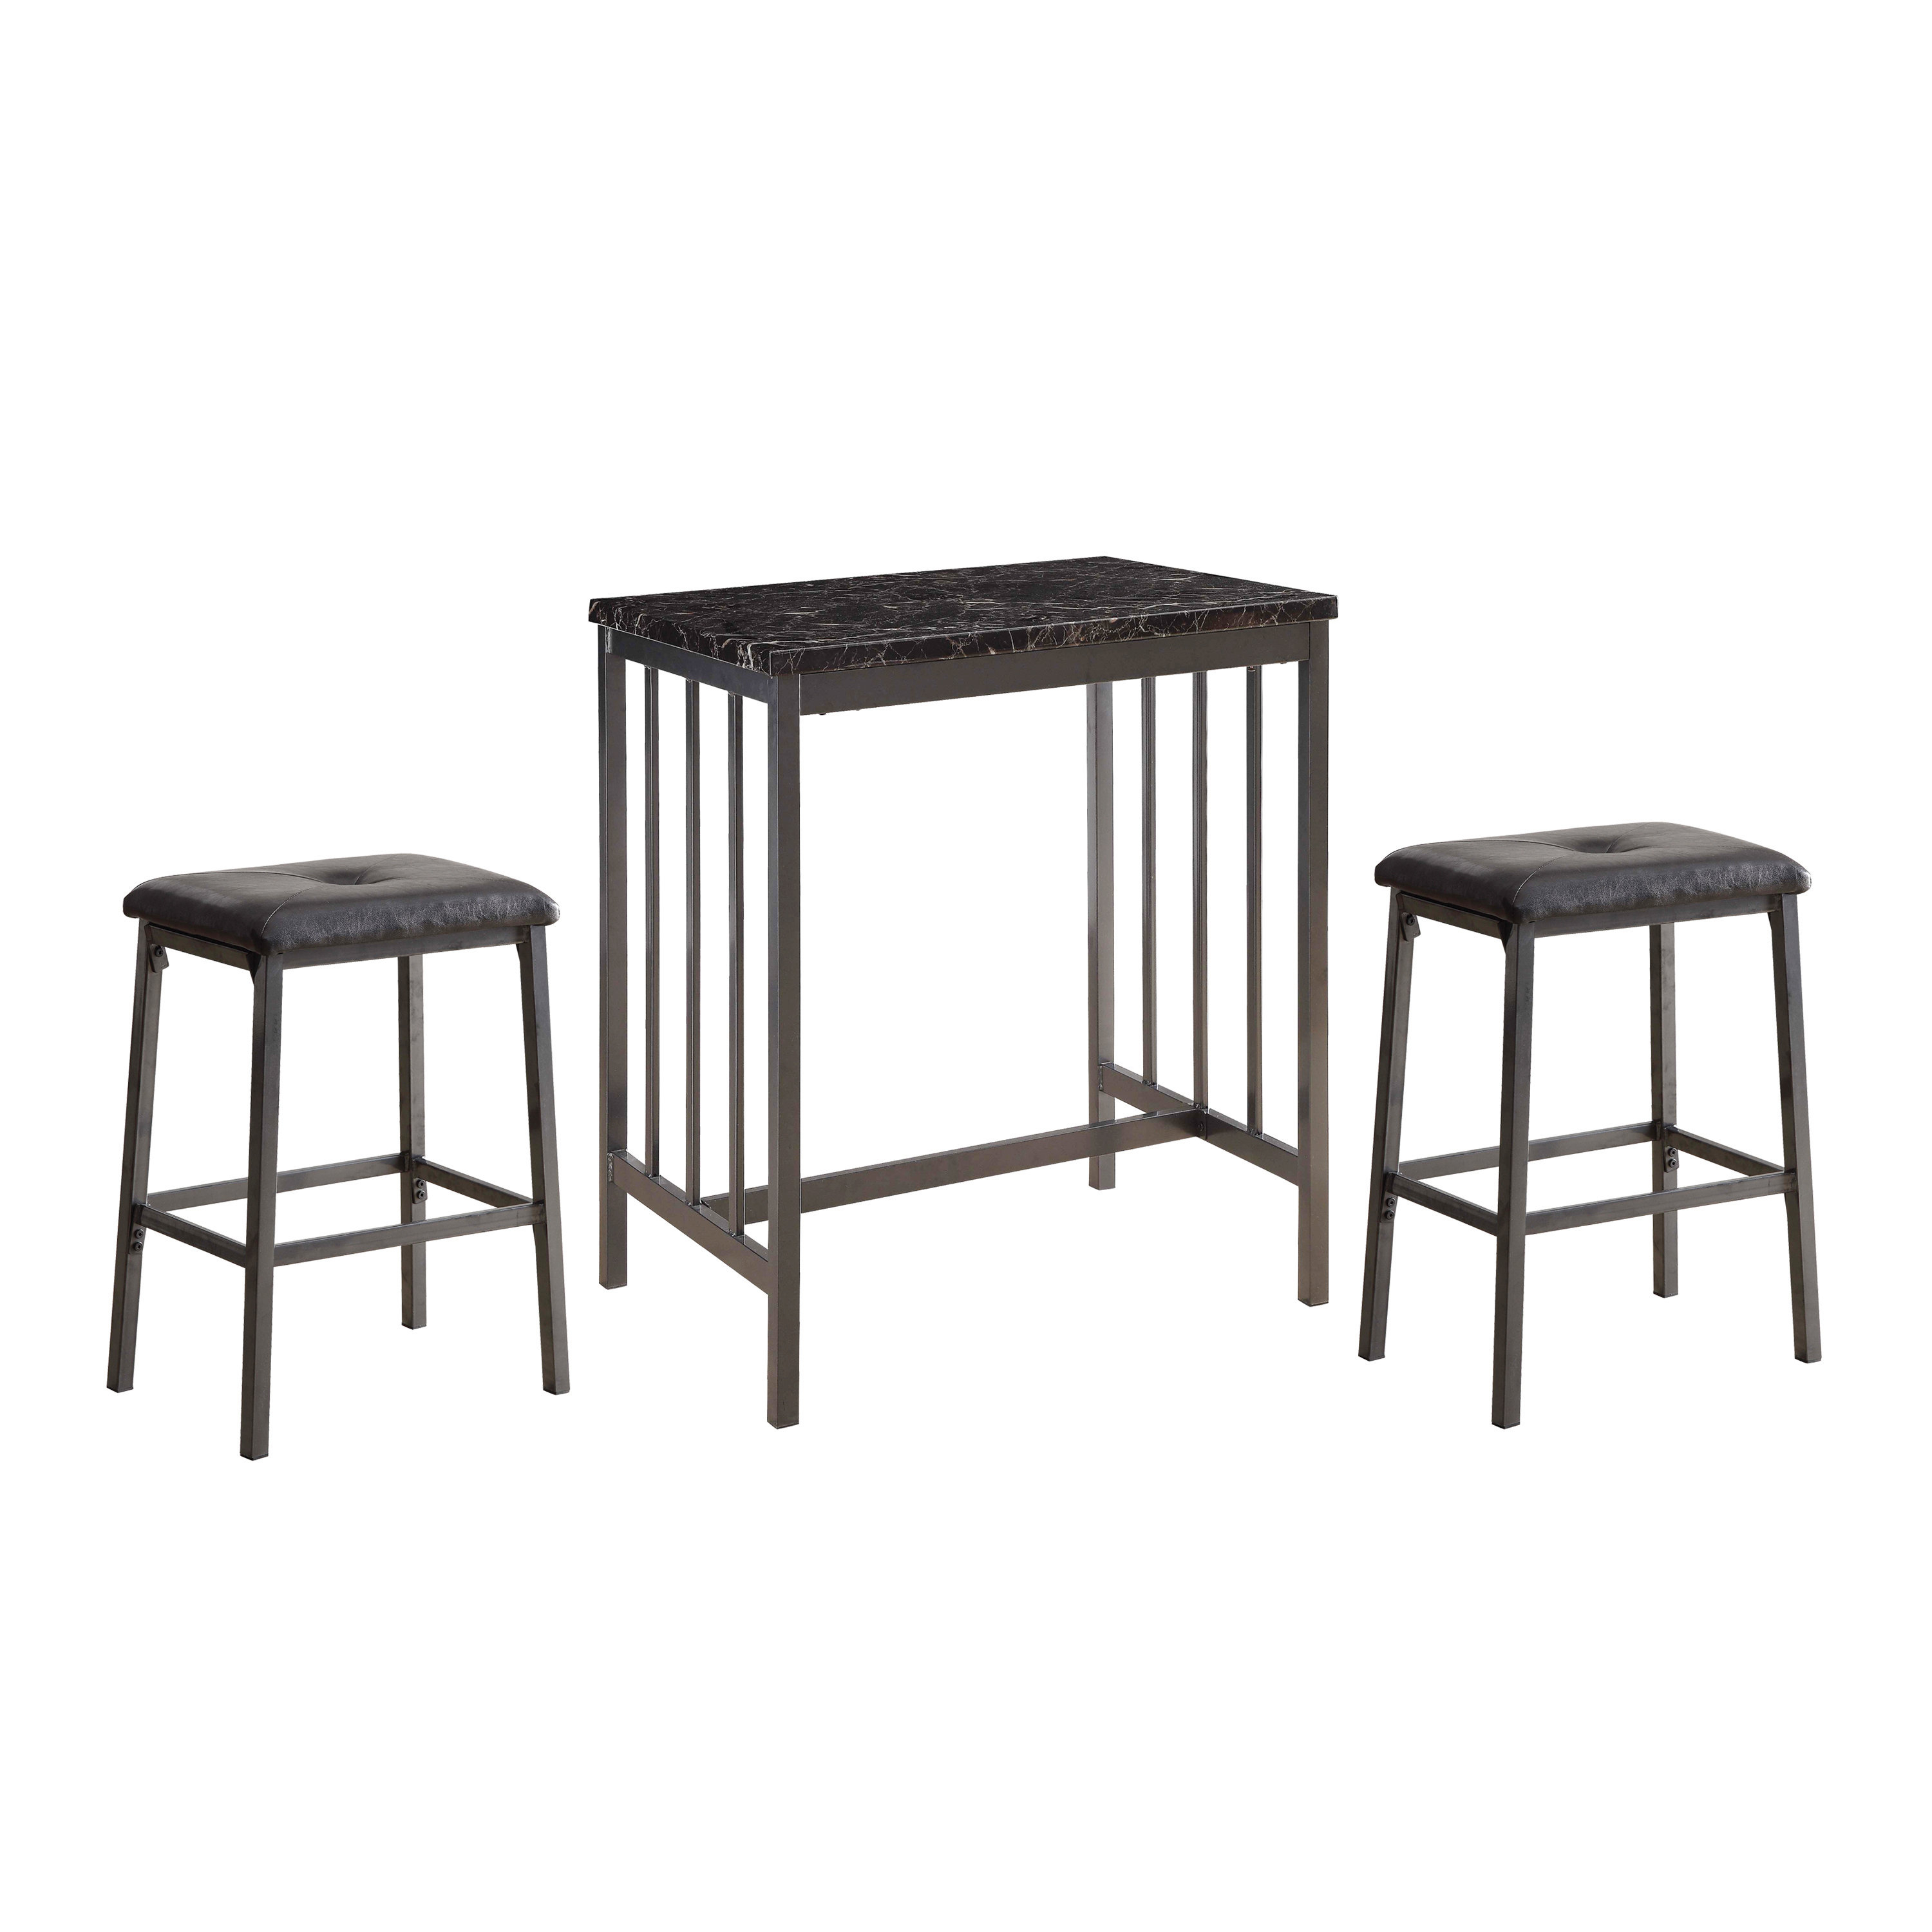 Wayfair Within Most Recent Nutter 3 Piece Dining Sets (View 21 of 25)